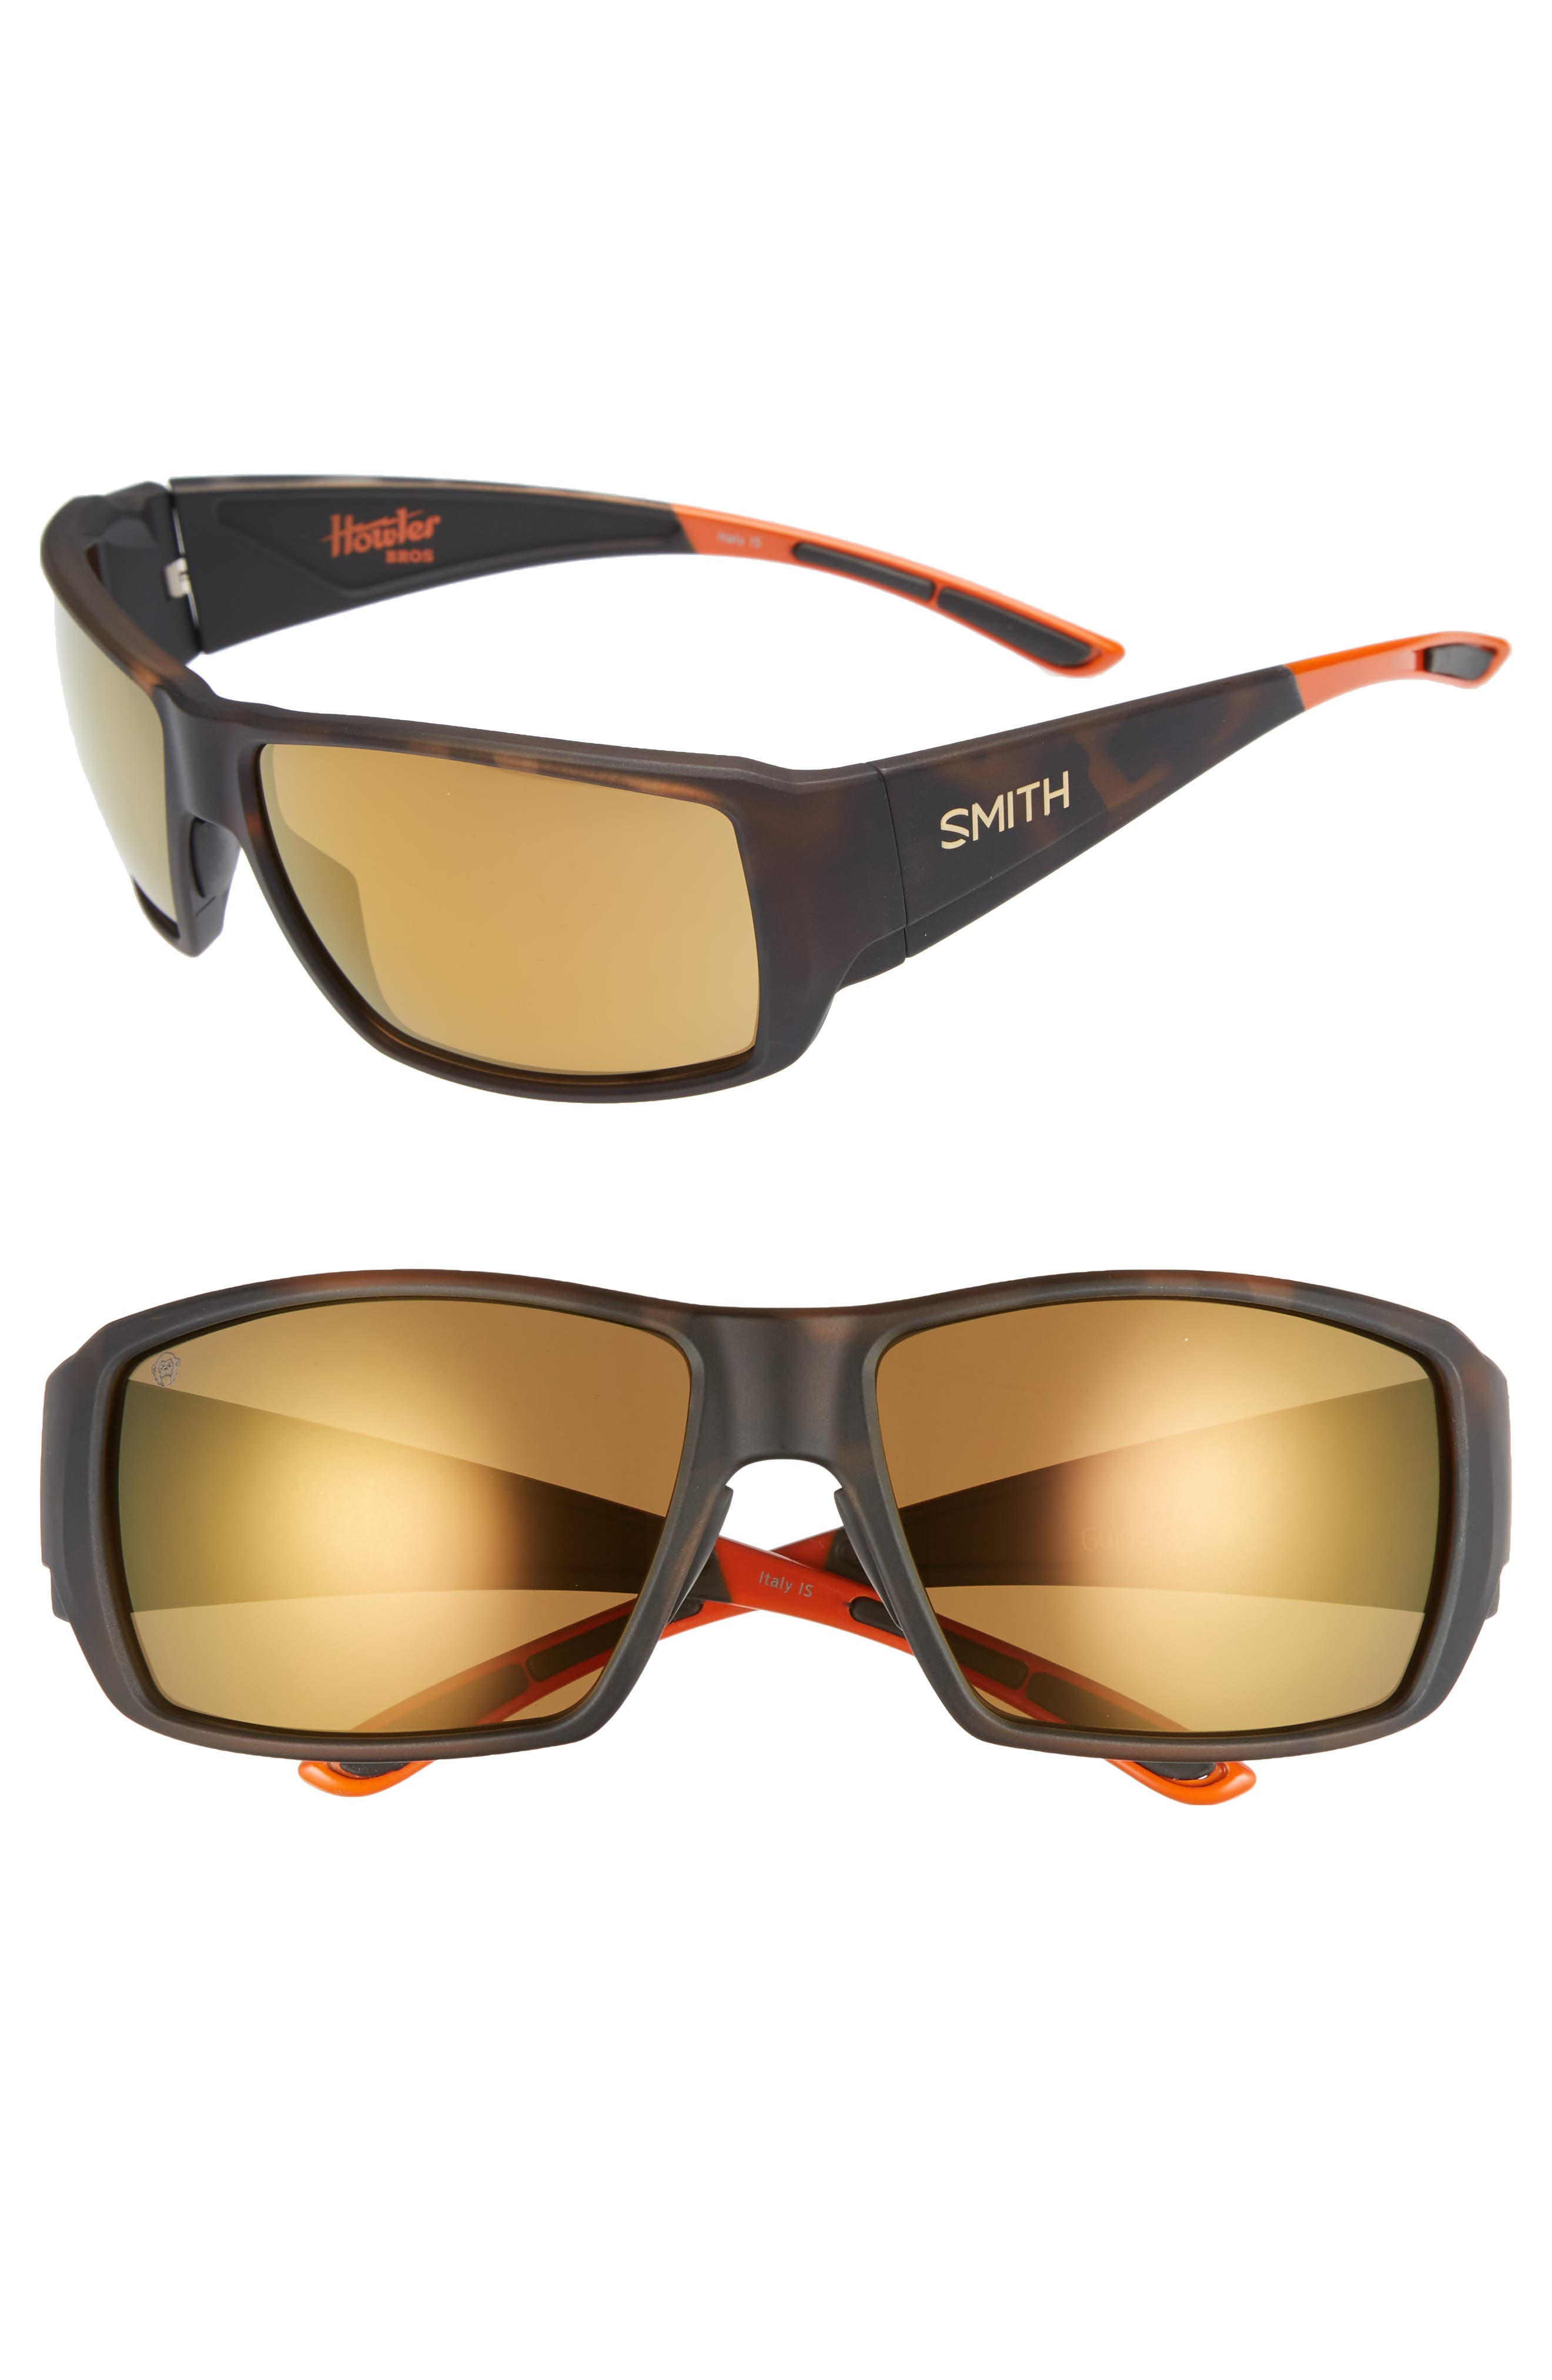 SMITH GUIDE'S CHOICE 62MM CHROMAPOP(TM) SPORT SUNGLASSES - MATTE TORTOISE/ BRONZE MIRROR